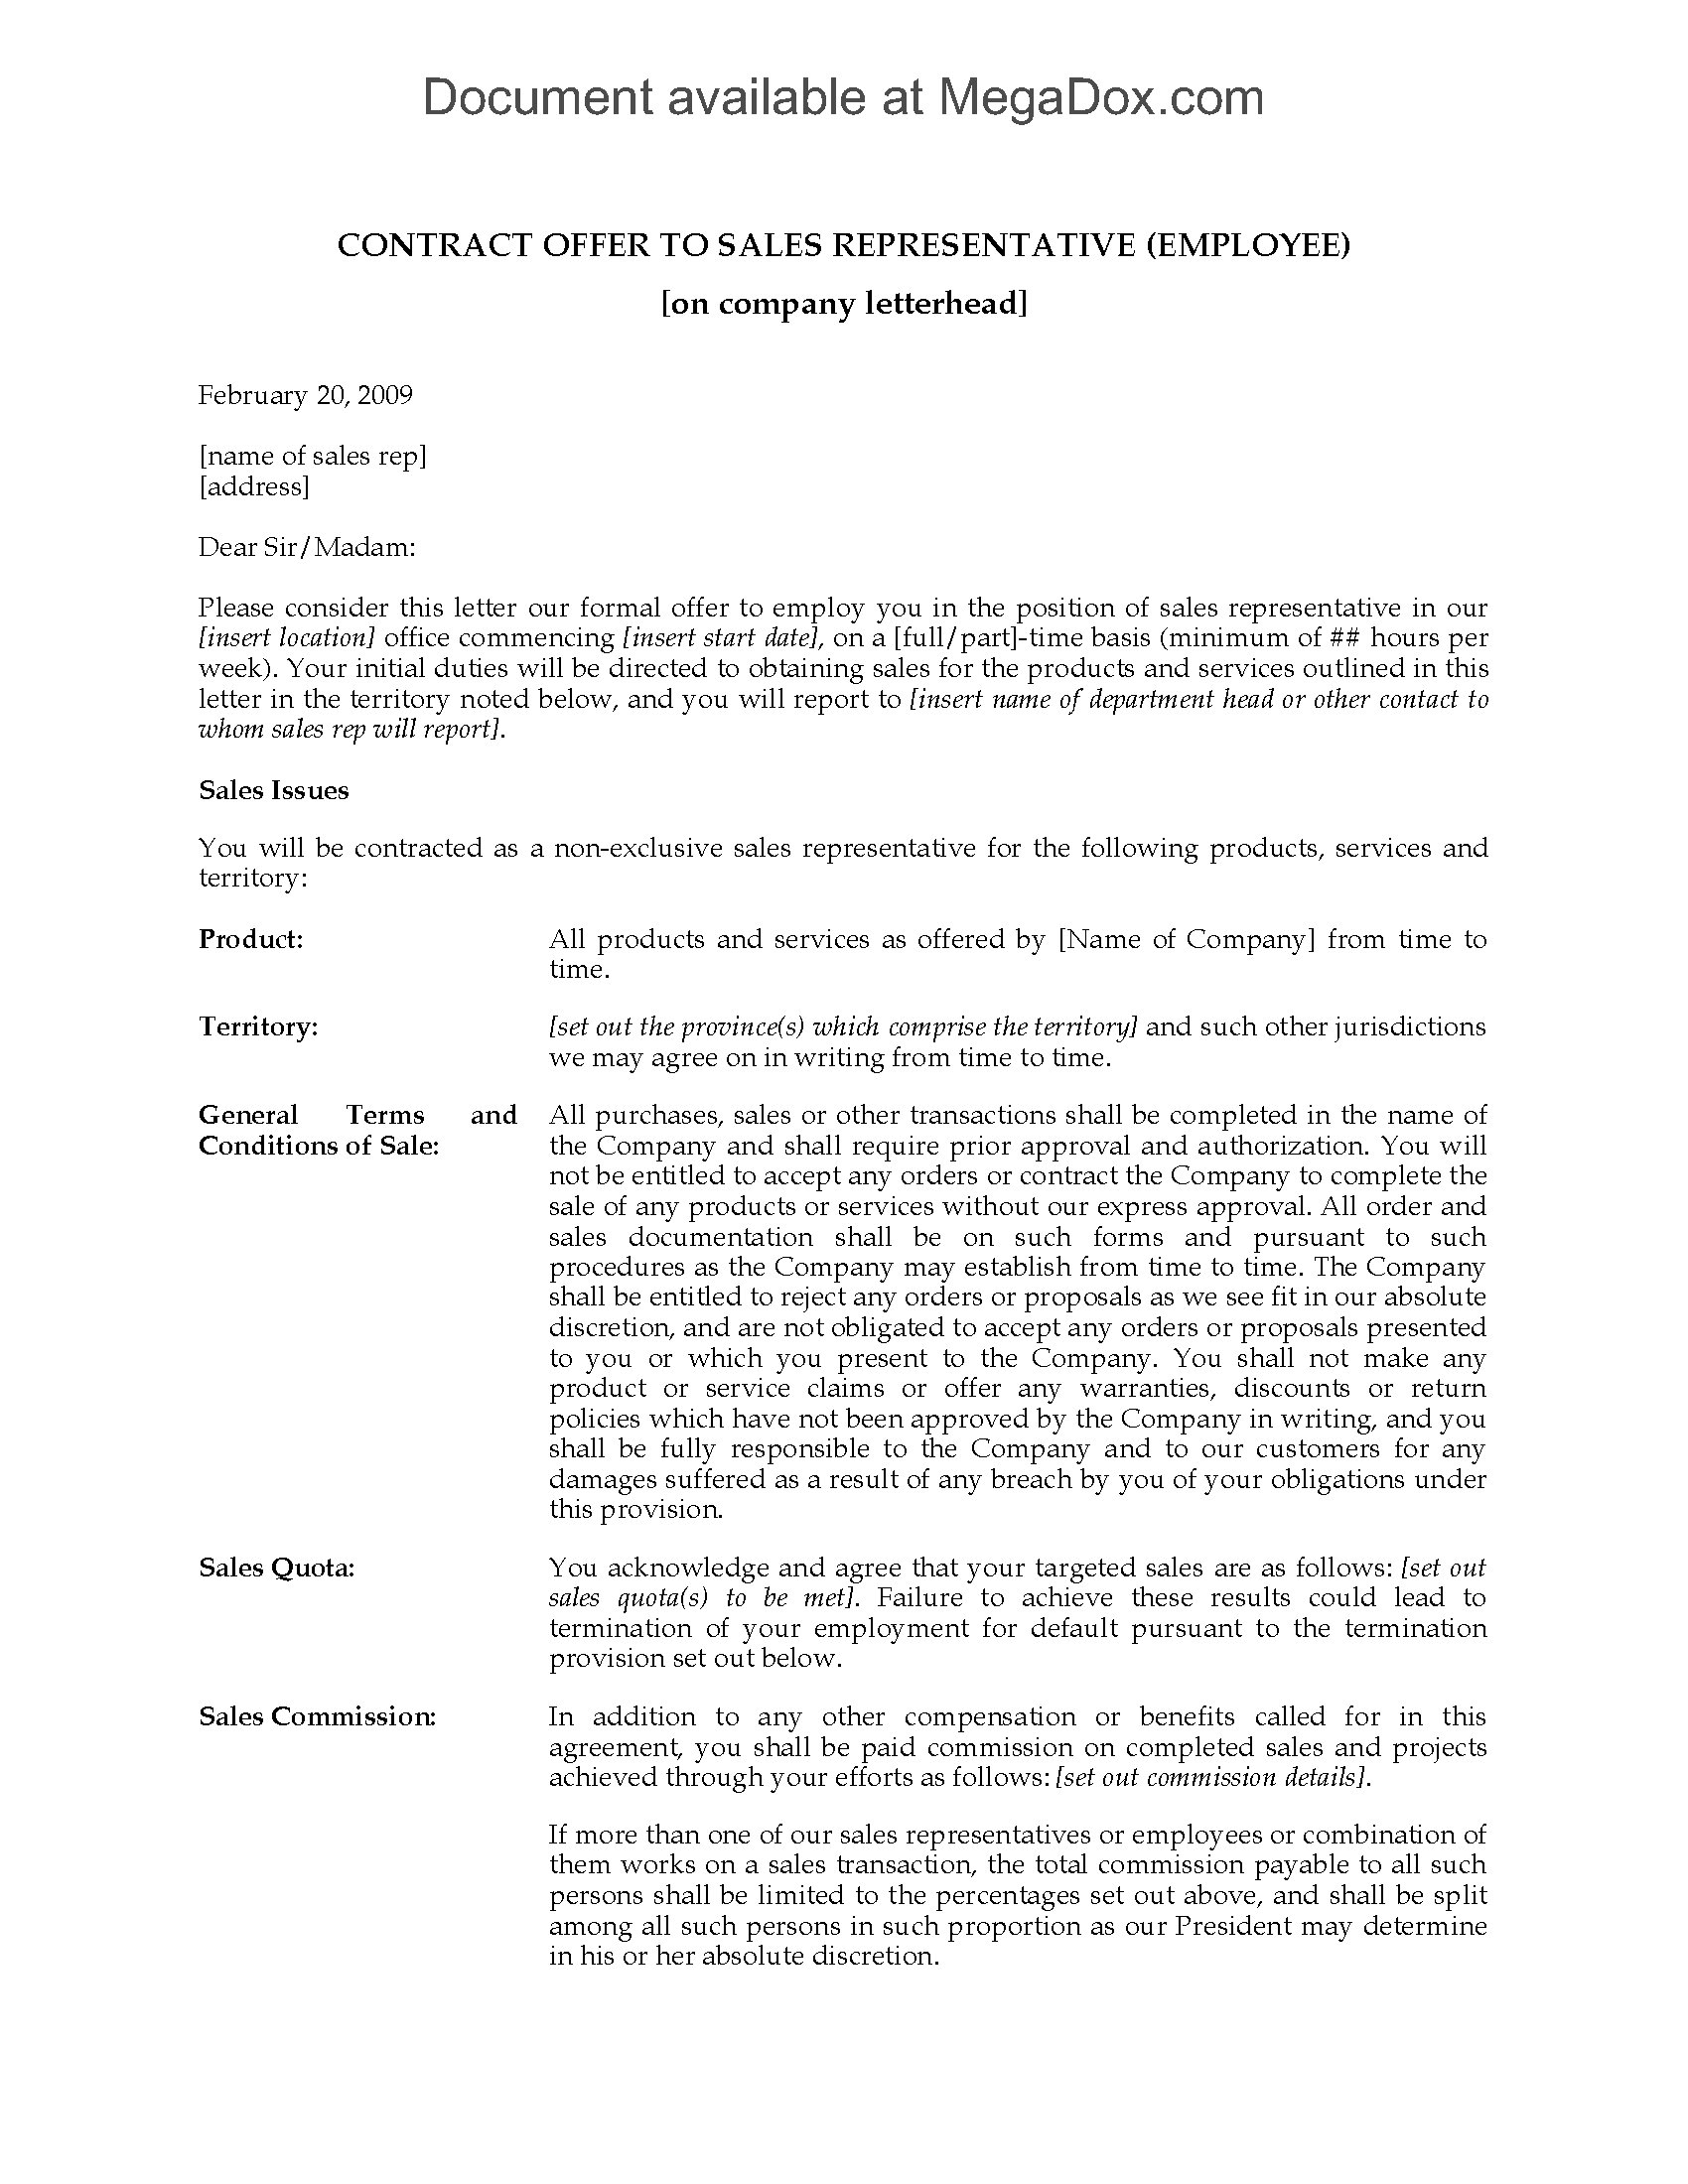 employee legal rep opening statement example